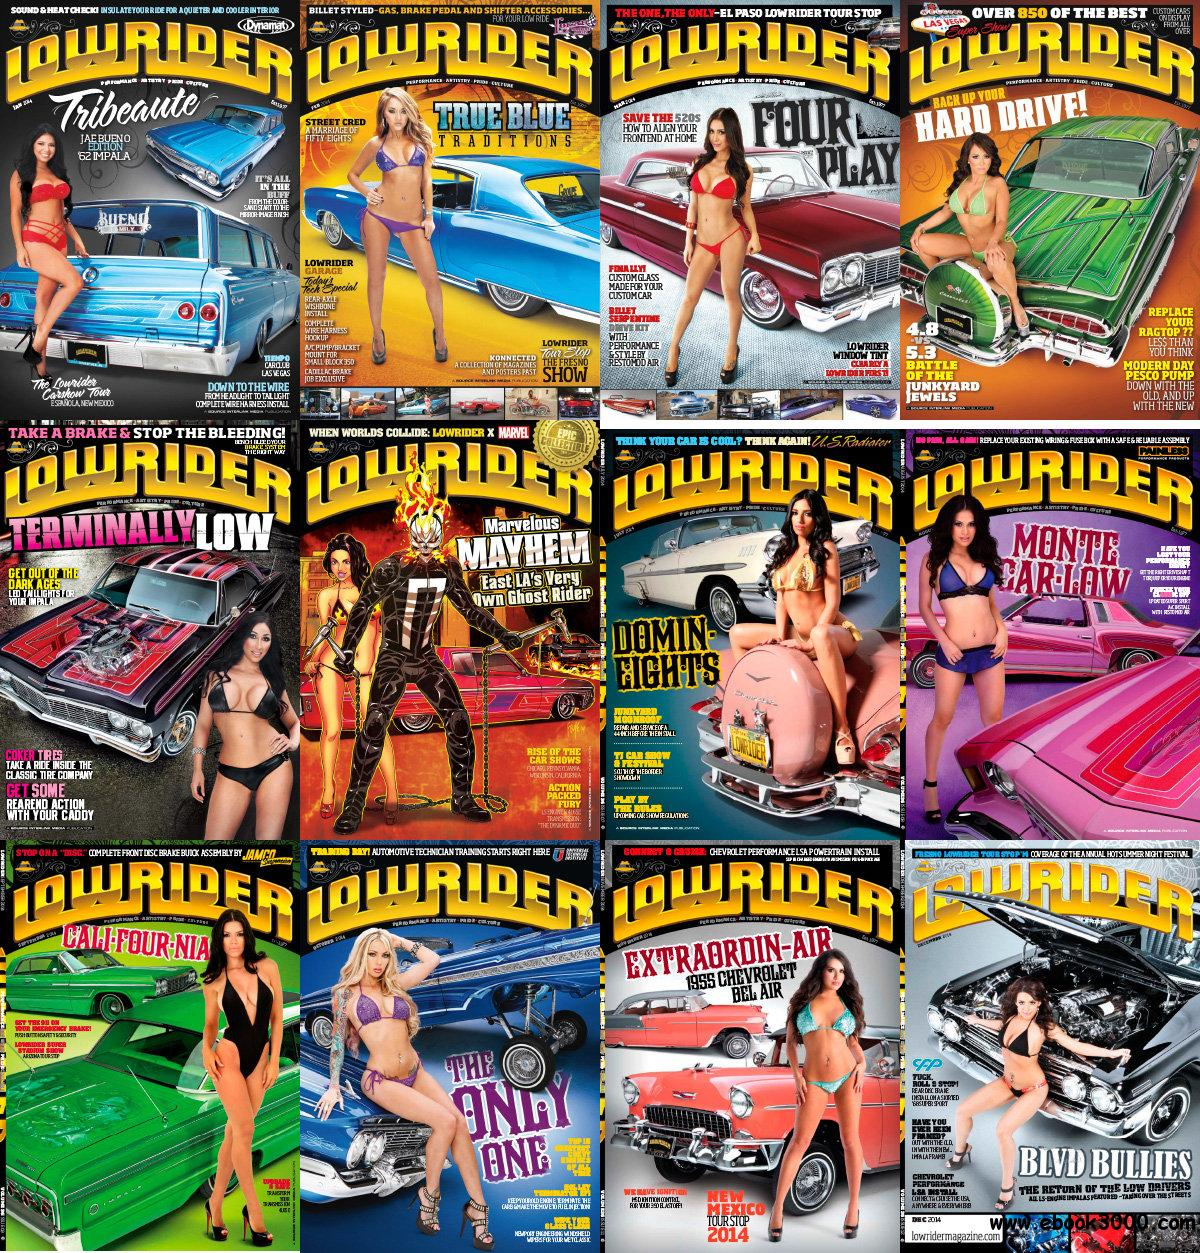 Lowrider USA 2014 Full Year Collection free download